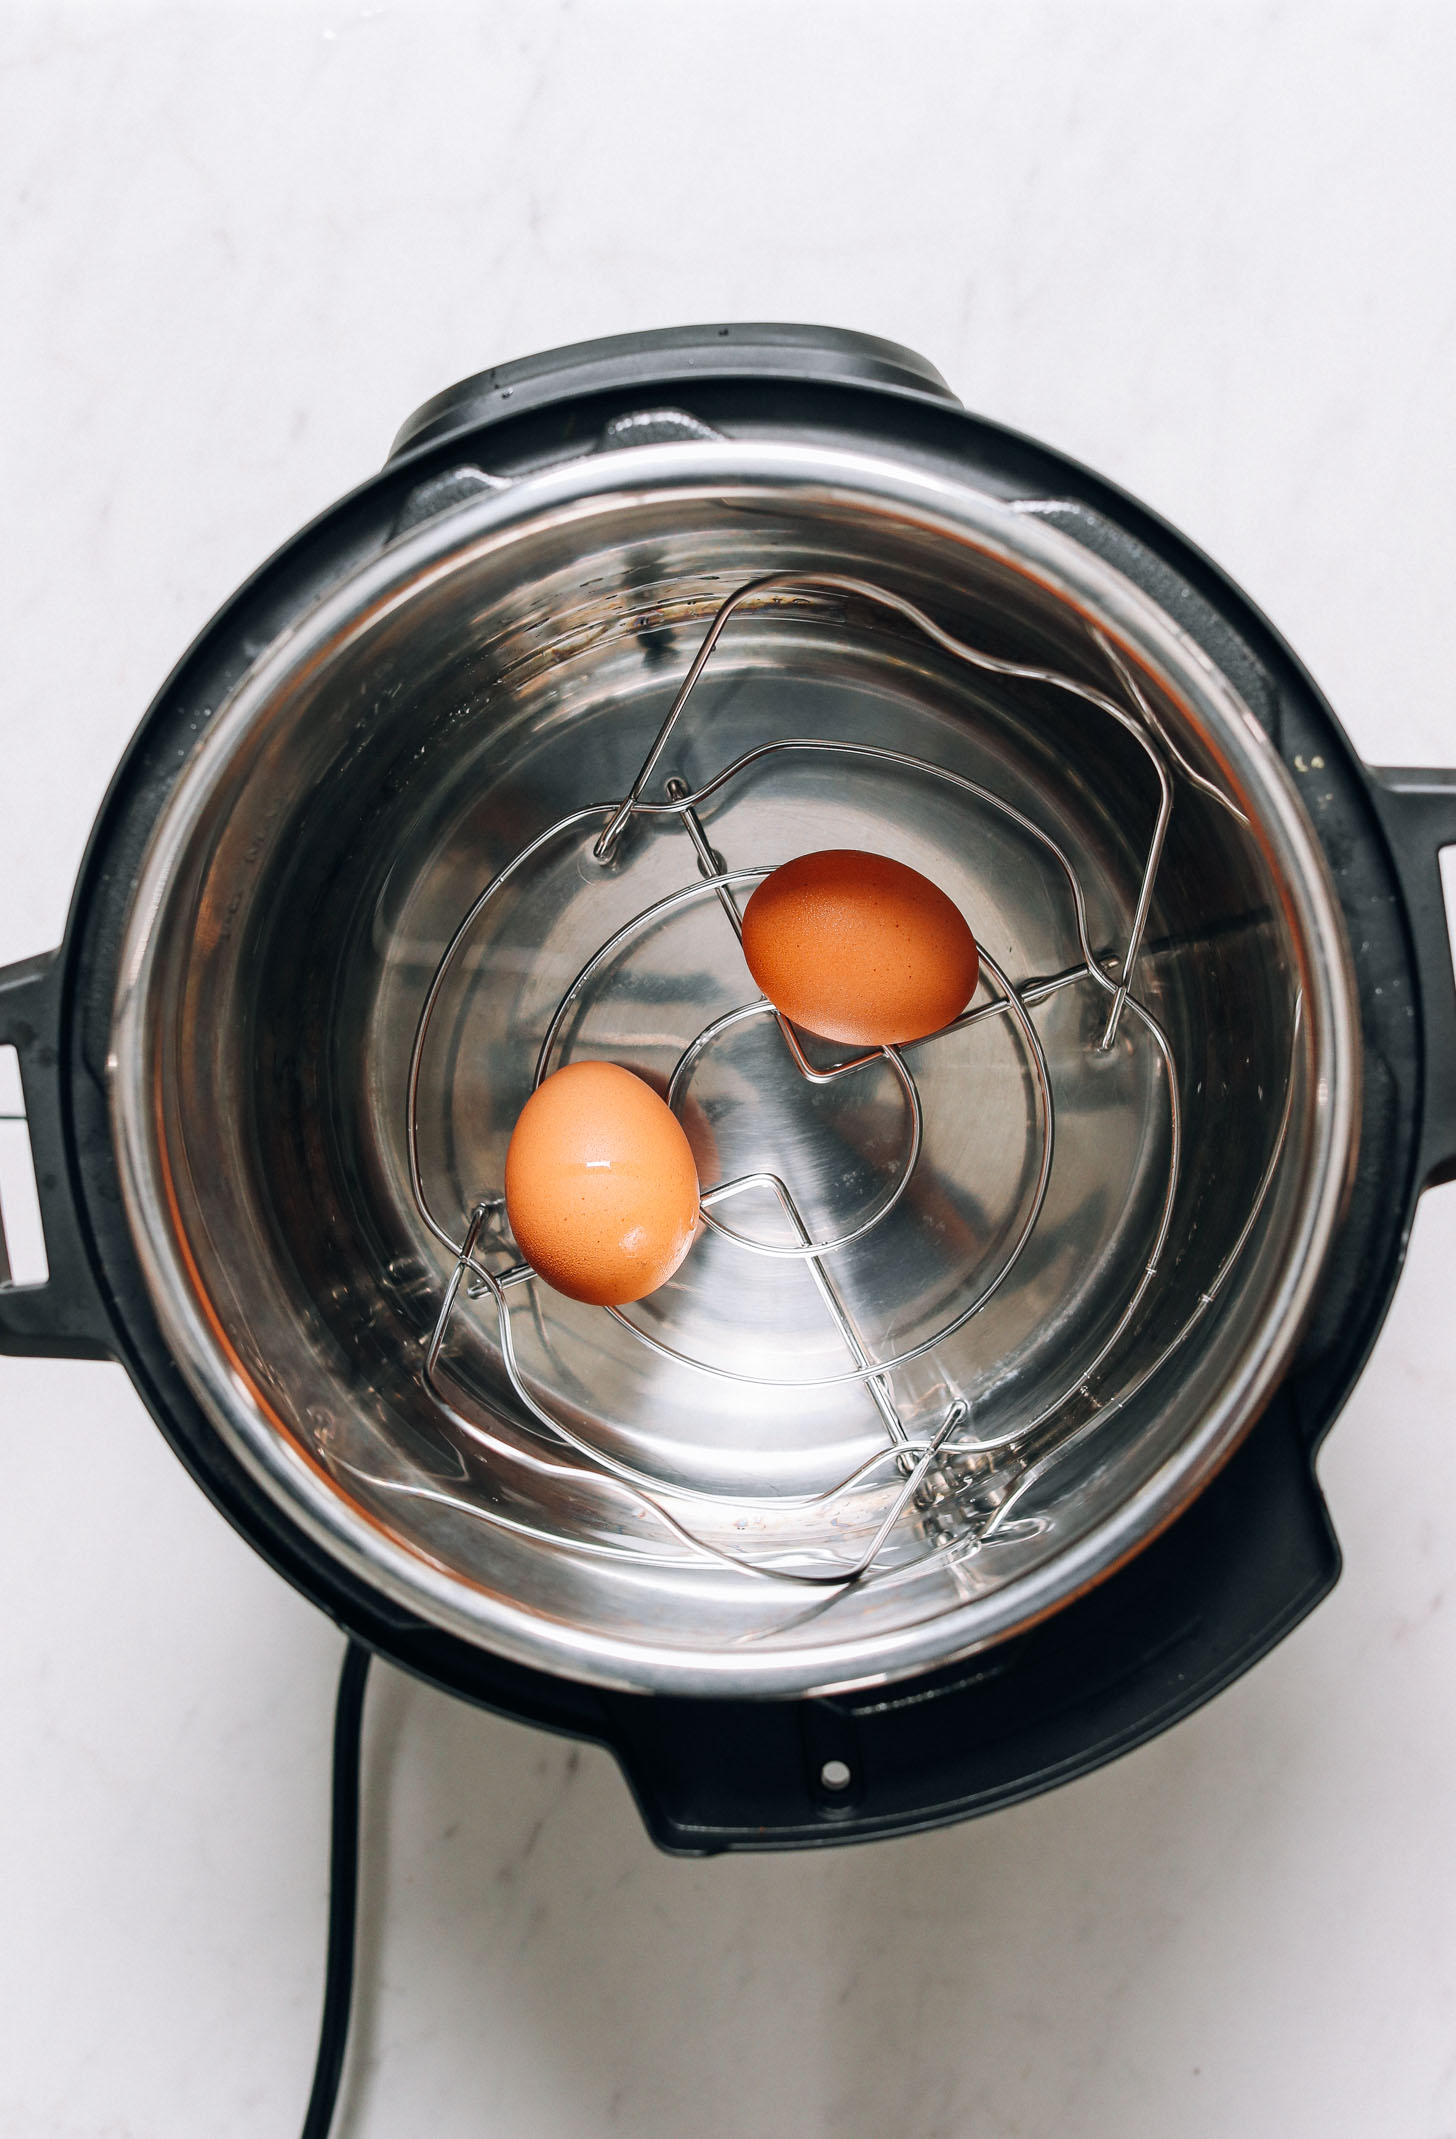 Showing how to make Instant Pot hard boiled eggs